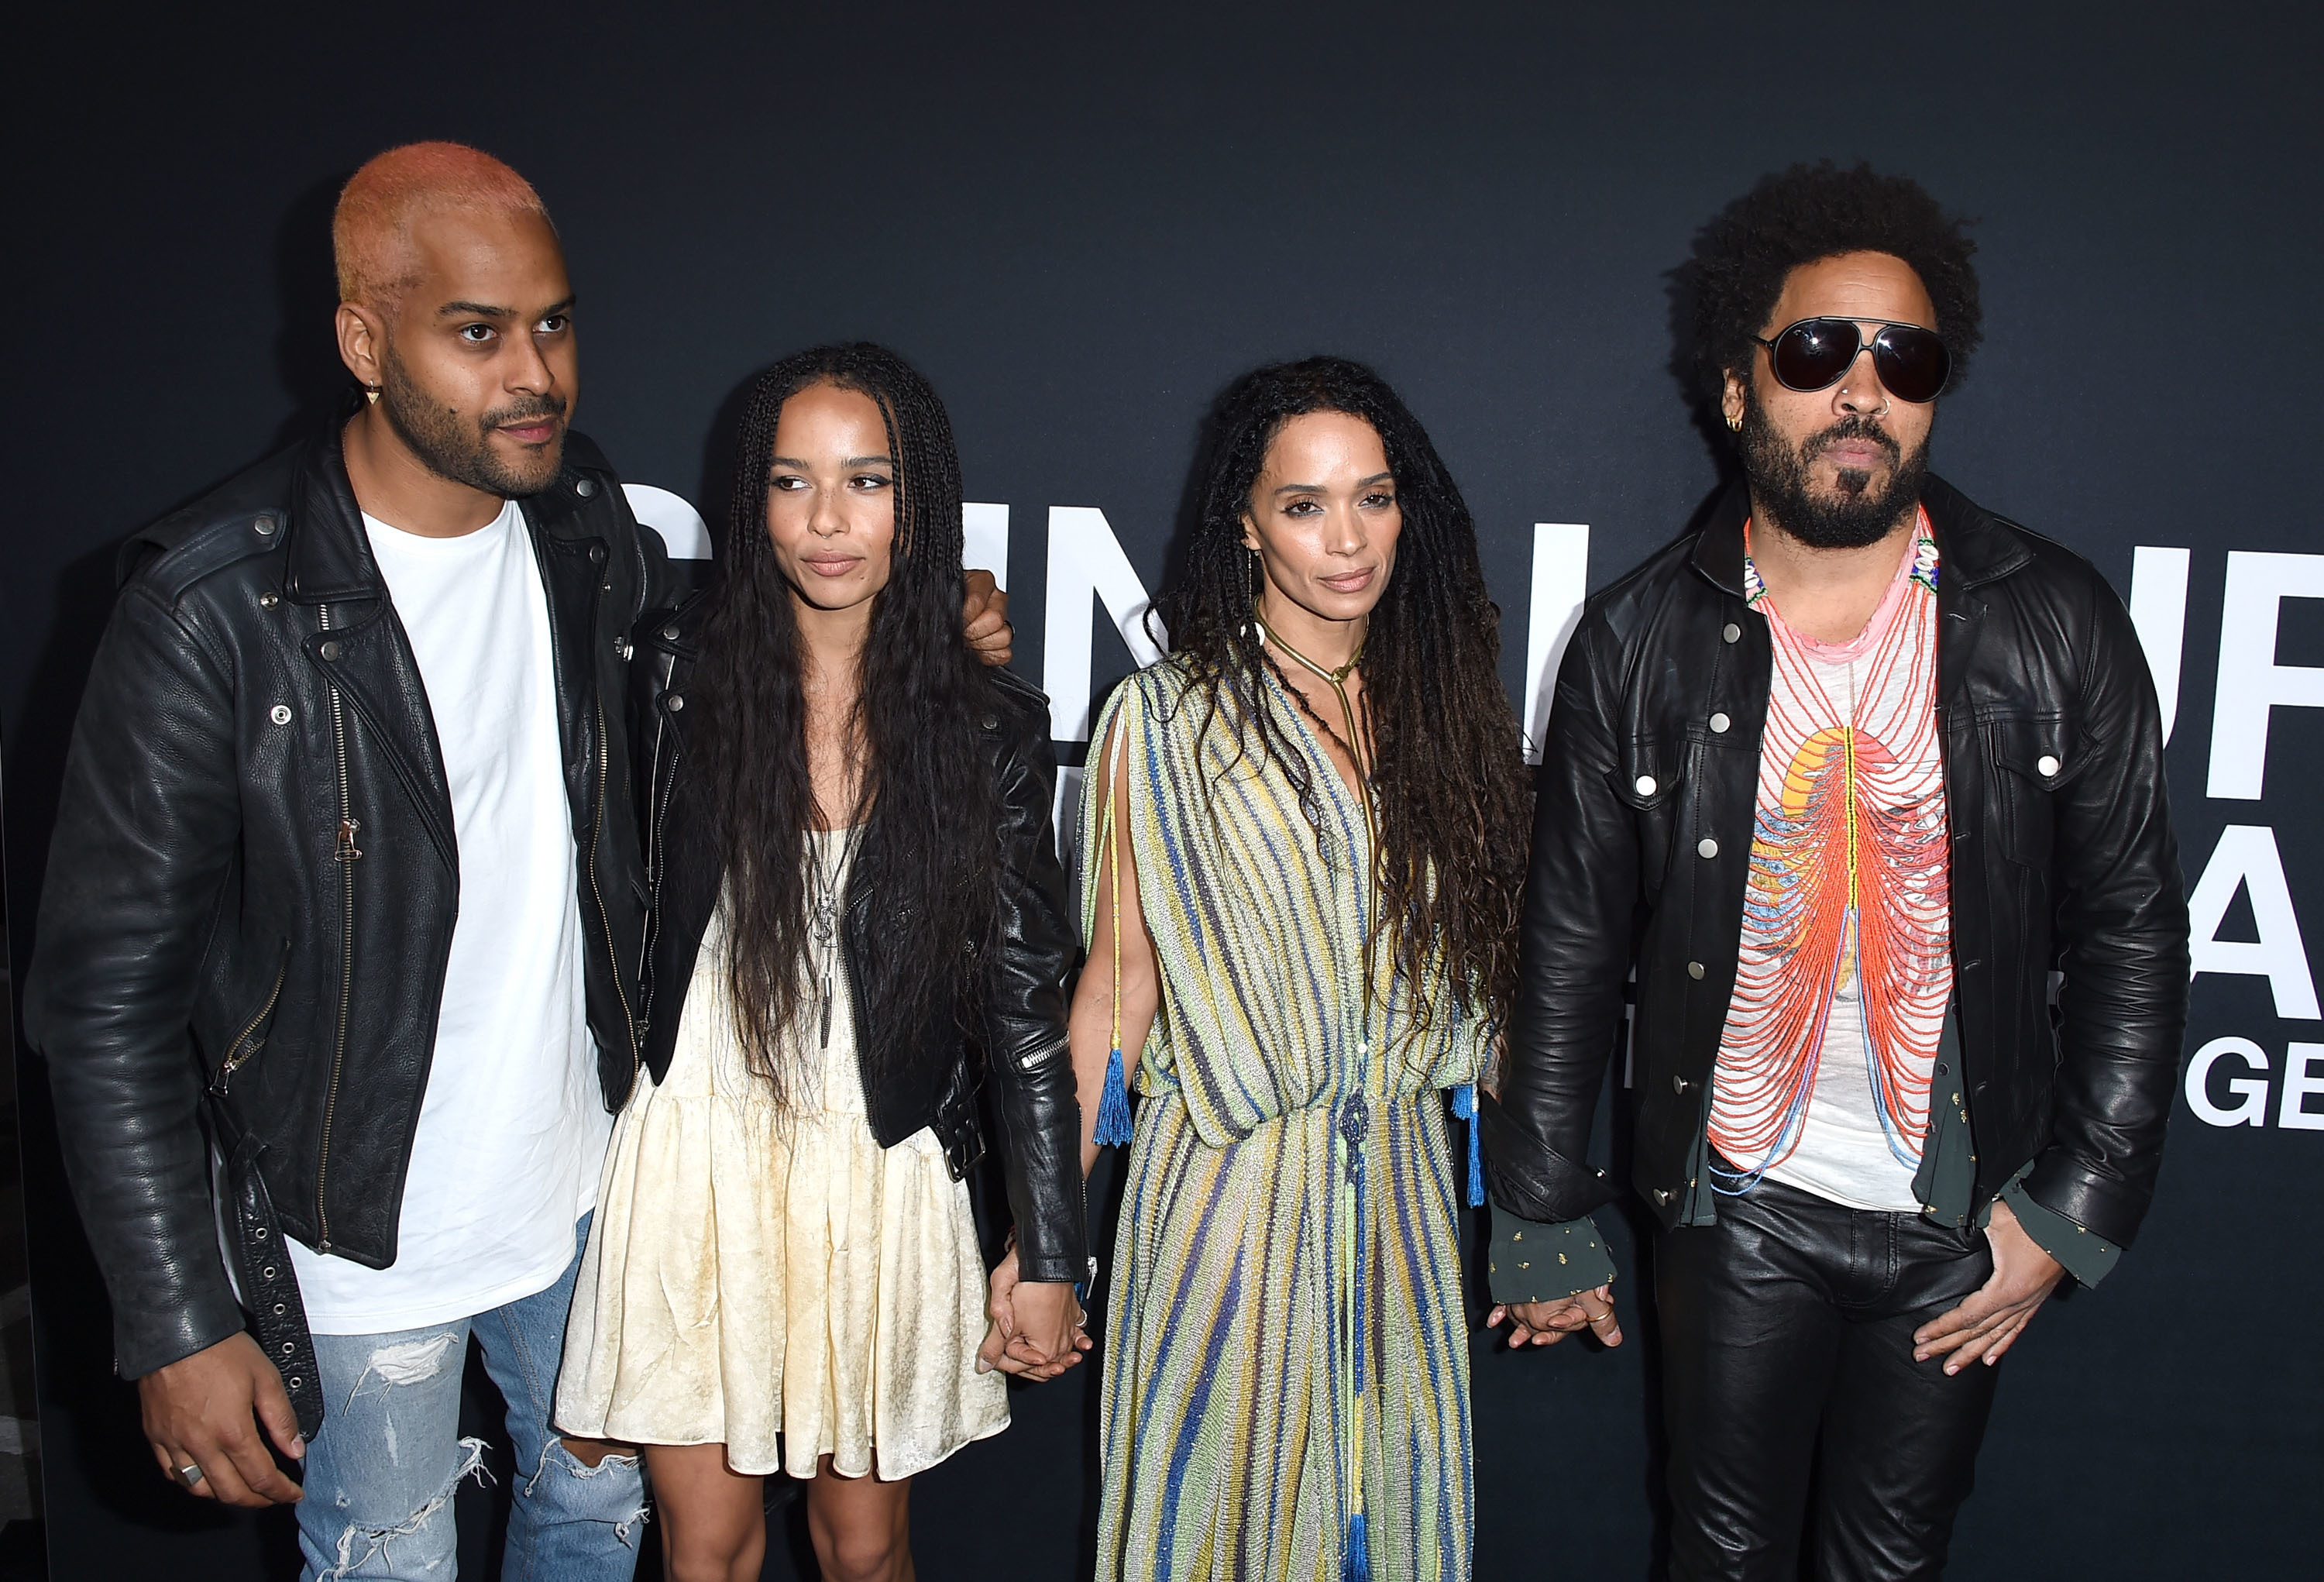 9. Twin Shadow is already a part of the fam!